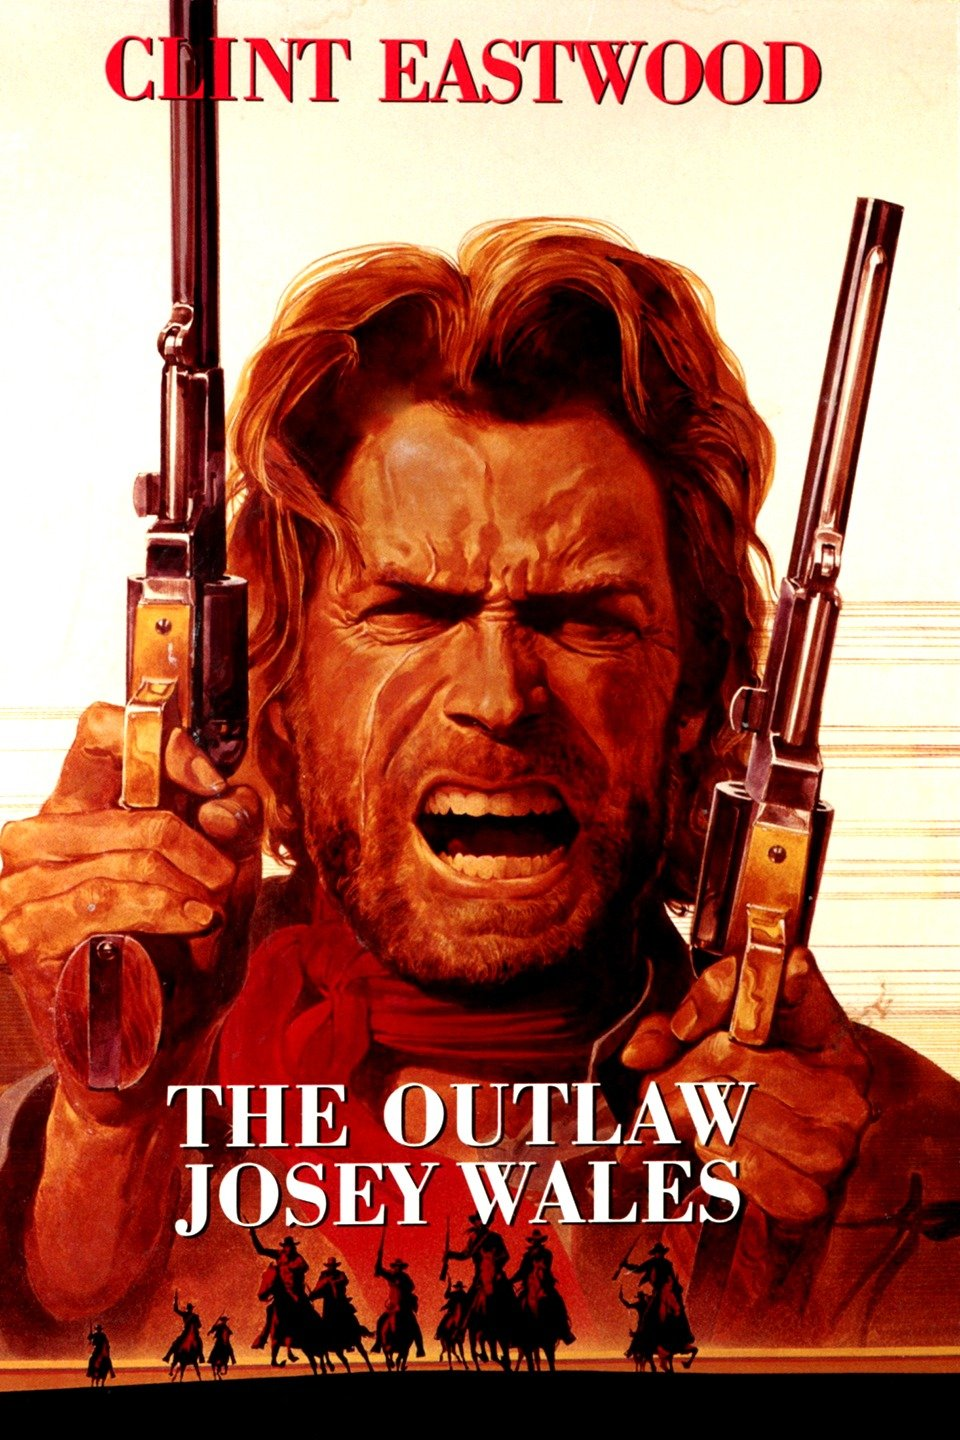 The Outlaw Josey Wales Poster.jpg